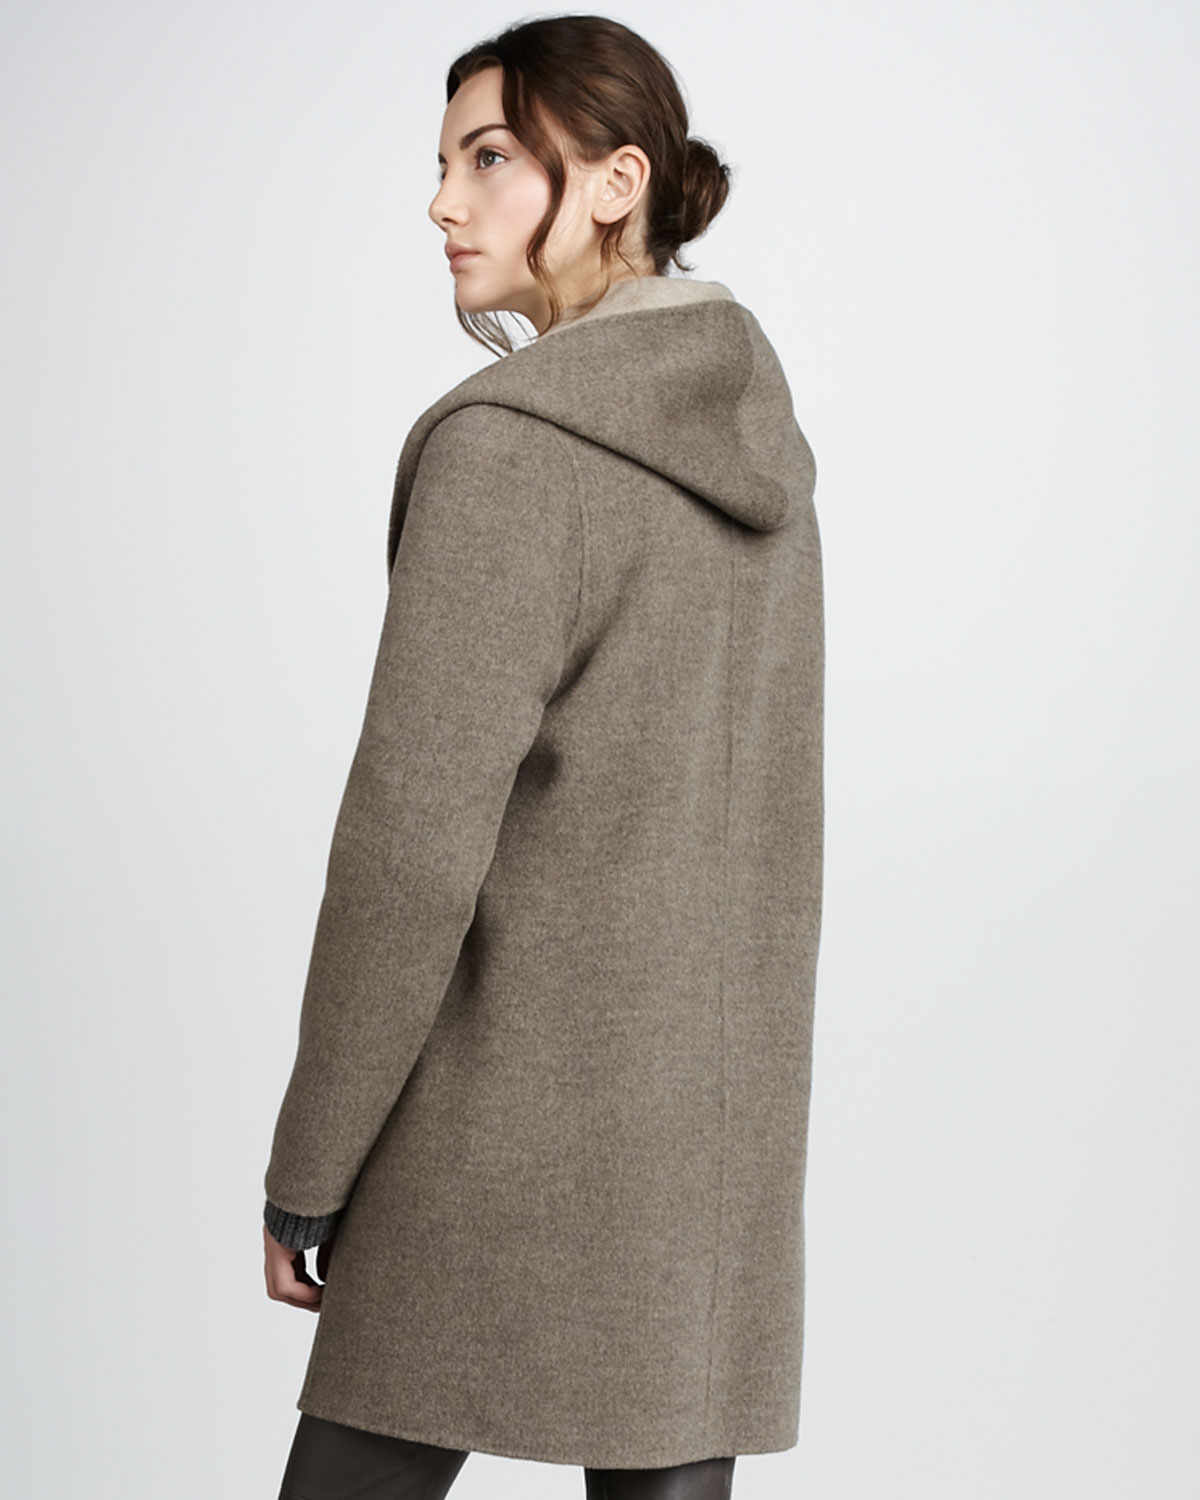 fall supply straight popsugar drape drapes vince coat talker fashion need trends hooded